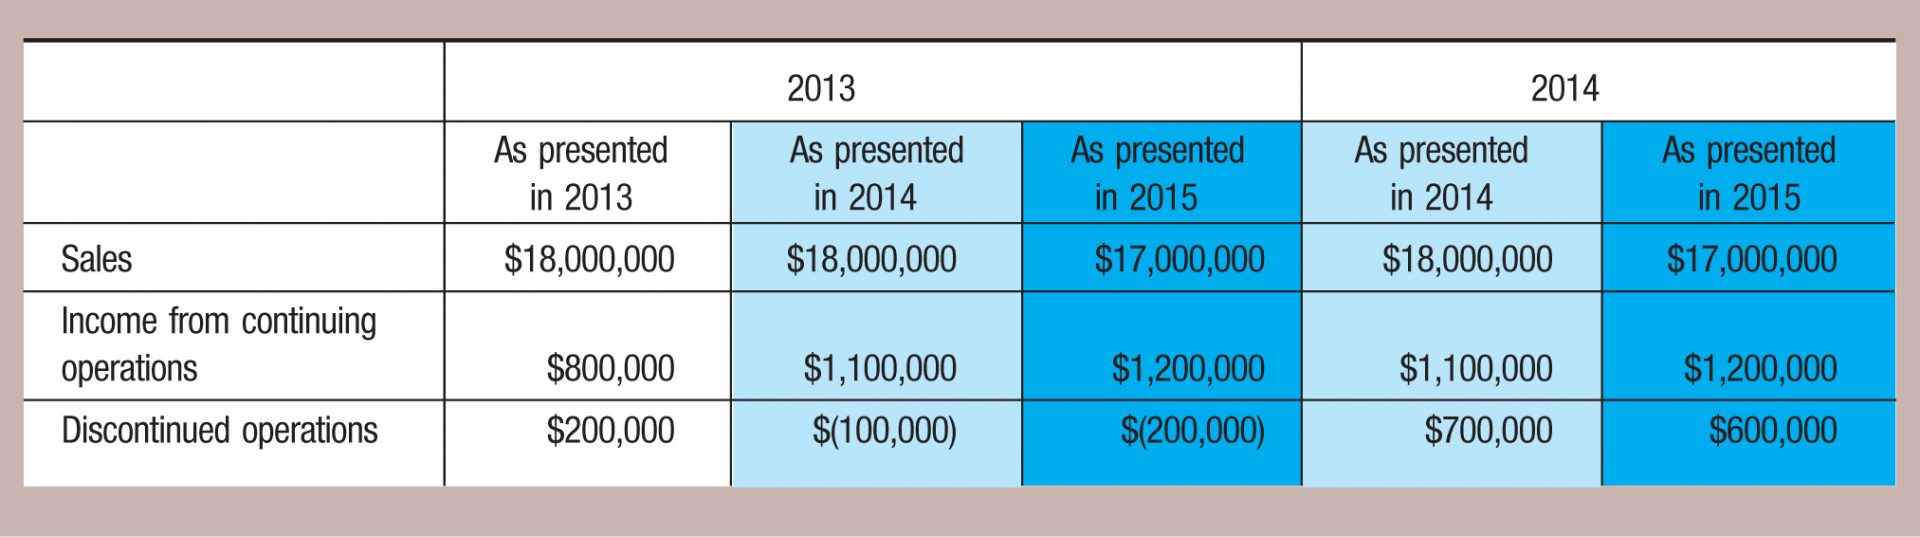 2013; 2014 As presented in 2013; As presented in 2014; As presented in 2015; As presented in 2014; As presented in 2015 Sales; ,000,000; ,000,000; ,000,000; ,000,000; ,000,000 Income from continuing operations; 0,000; ,100,000; ,200,000; ,100,000; ,200,000 Discontinued operations; 0,000; $(100,000); $(200,000); 0,000; 0,000